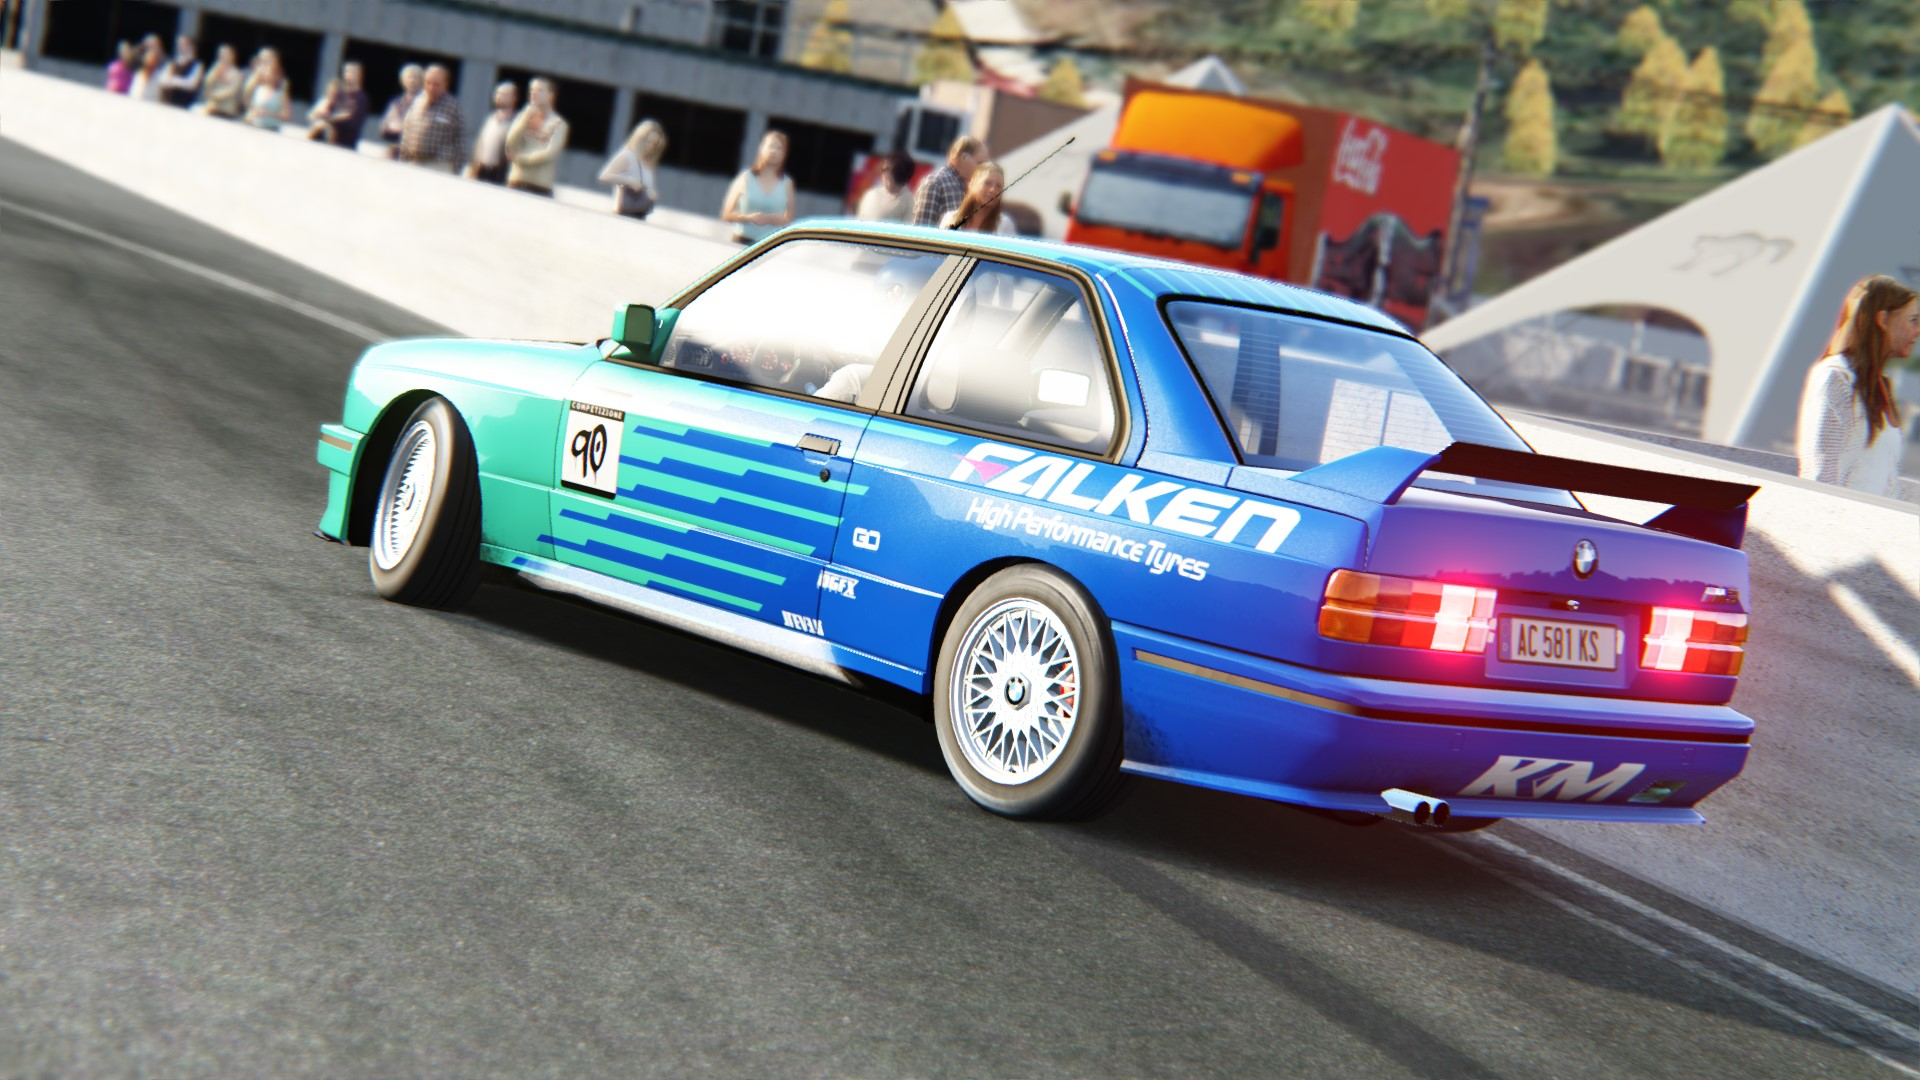 Screenshot_bmw_m3_e30_drift_suzukatwindrift_7-4-116-23-55-40.jpg